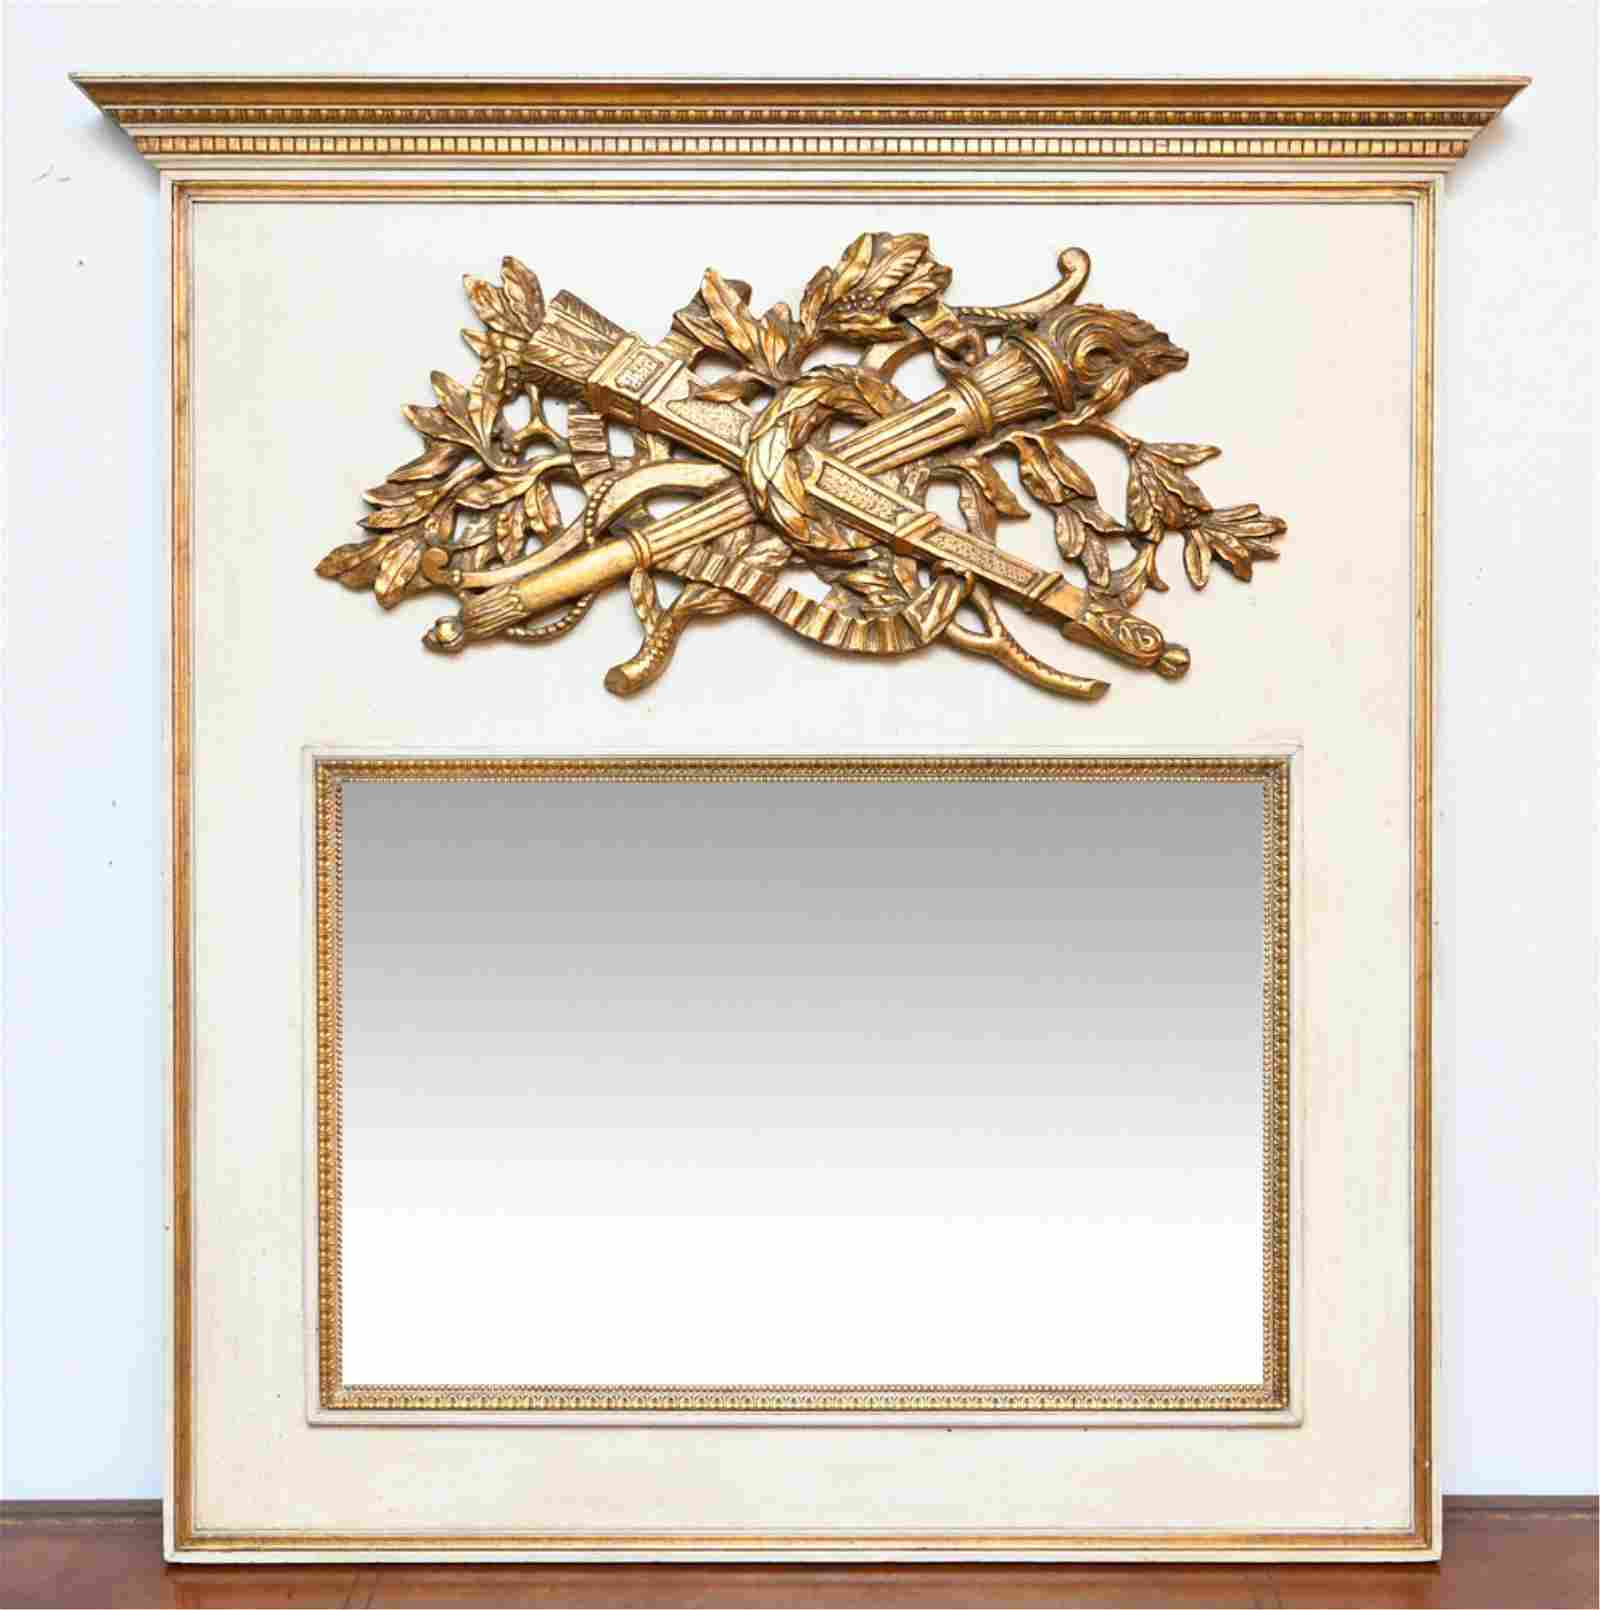 VINTAGE FRENCH STYLE TRUMEAU MIRROR